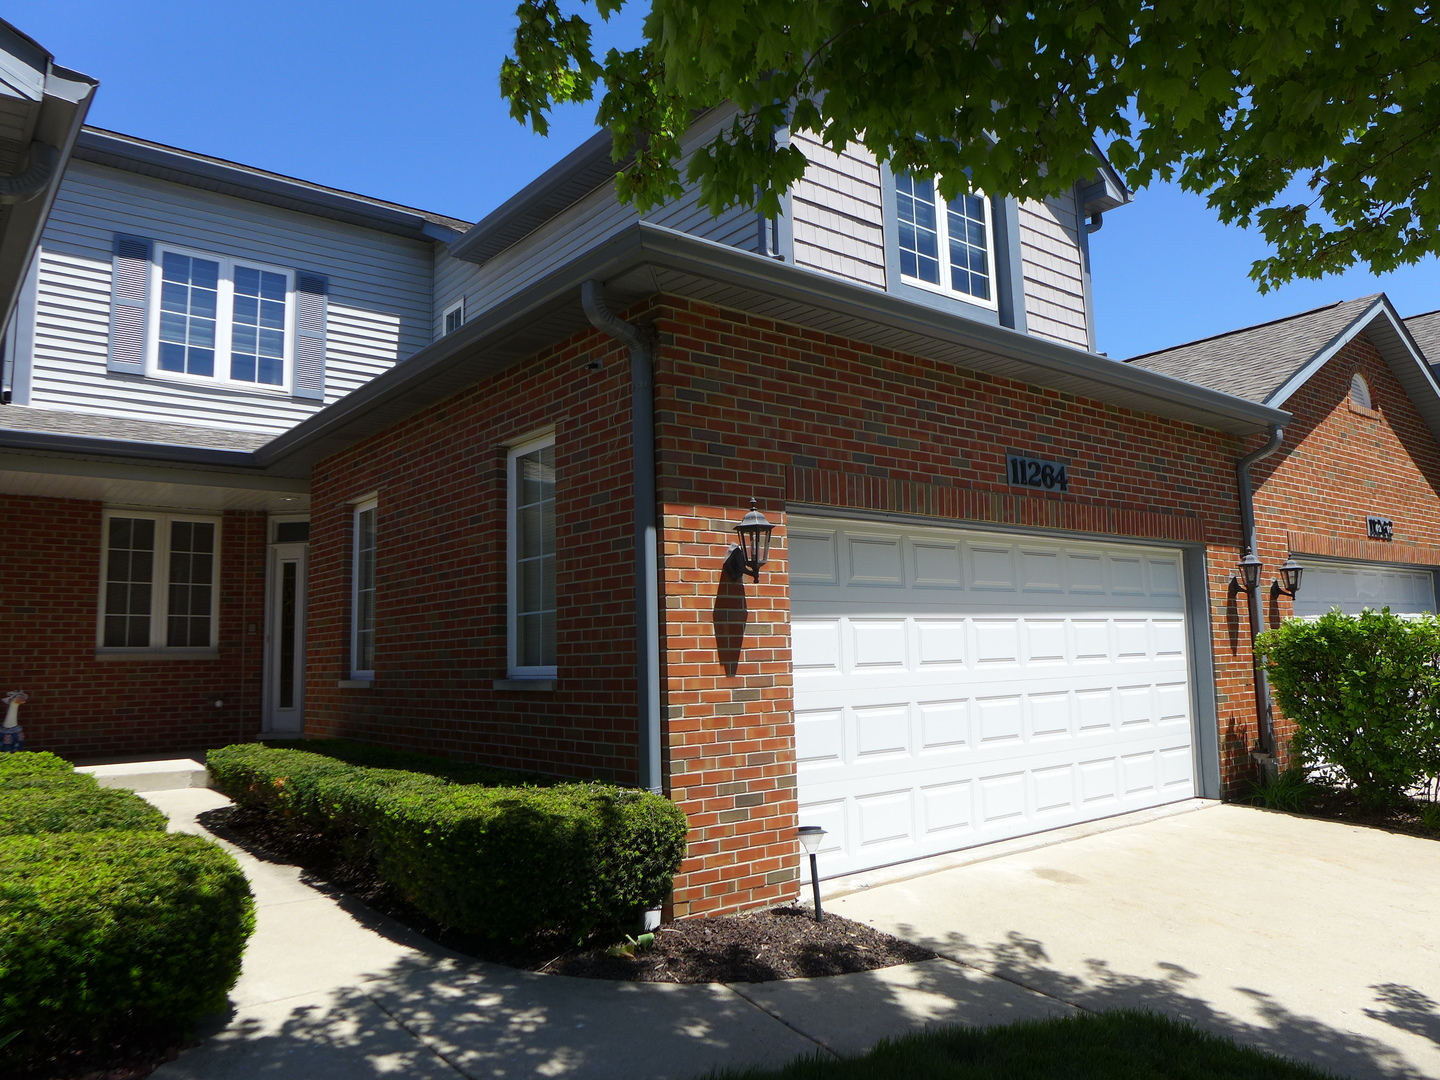 Photo of 11264 Melrose Court ORLAND PARK IL 60467